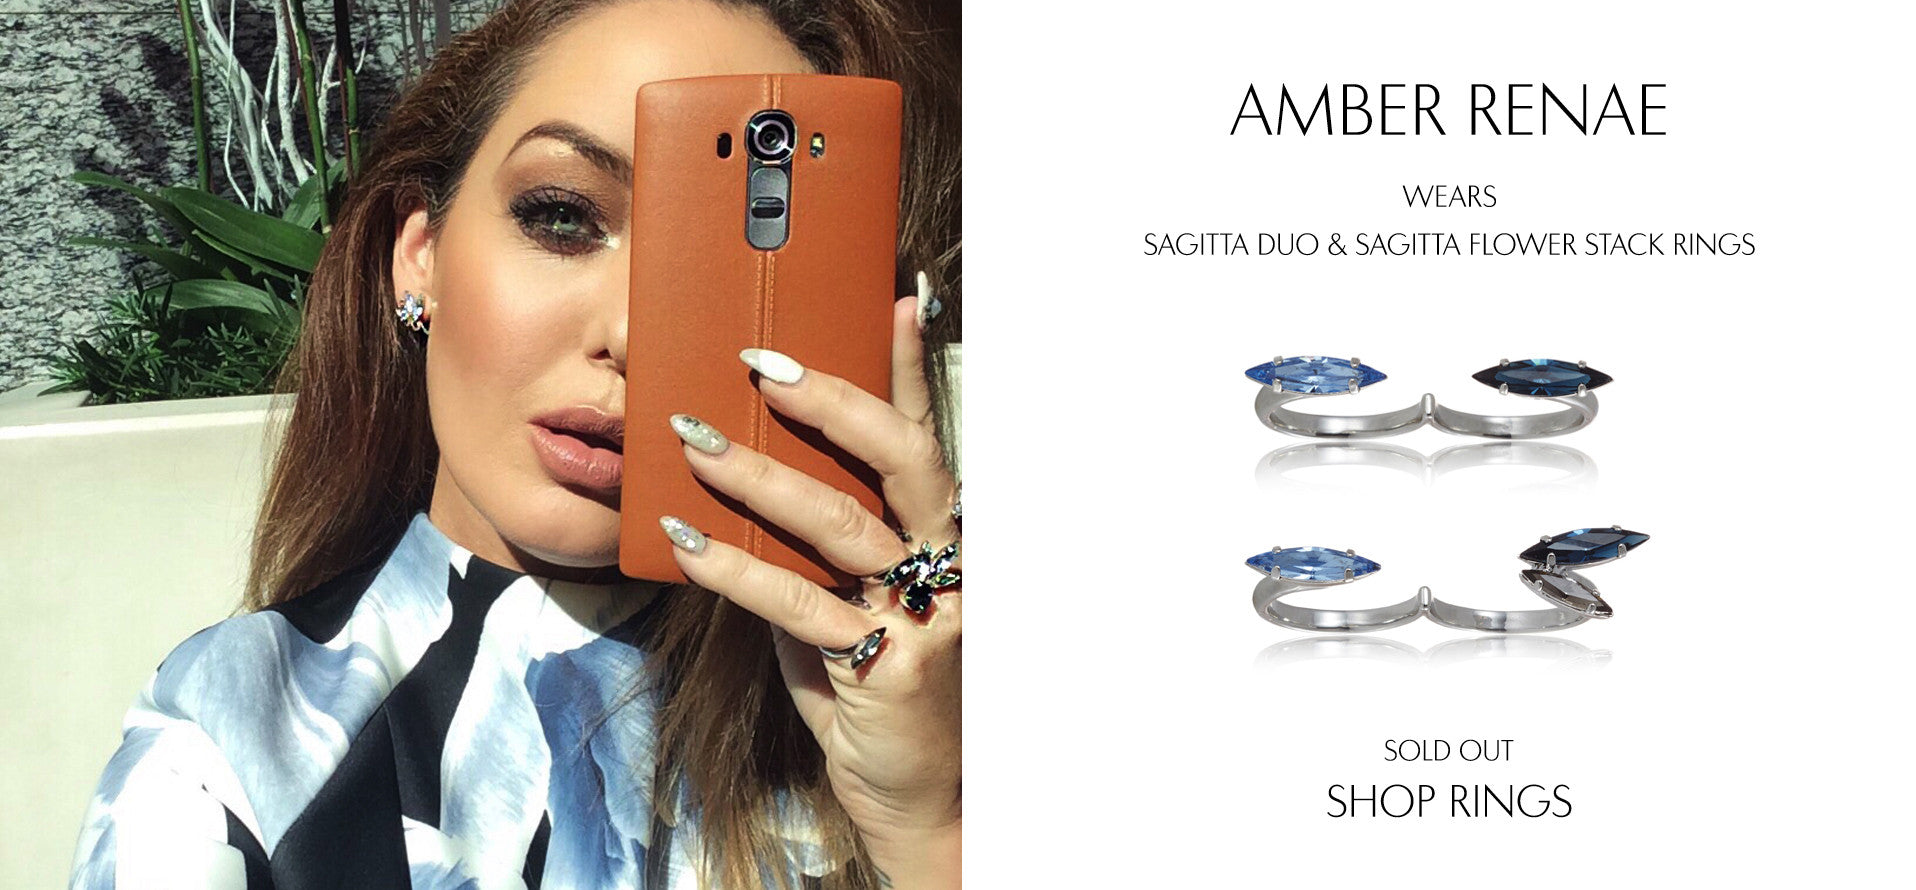 Amber Renae in Singapore to promote the new Samsung LG G4 wearing Sarina Suriano crystal rings and earrings